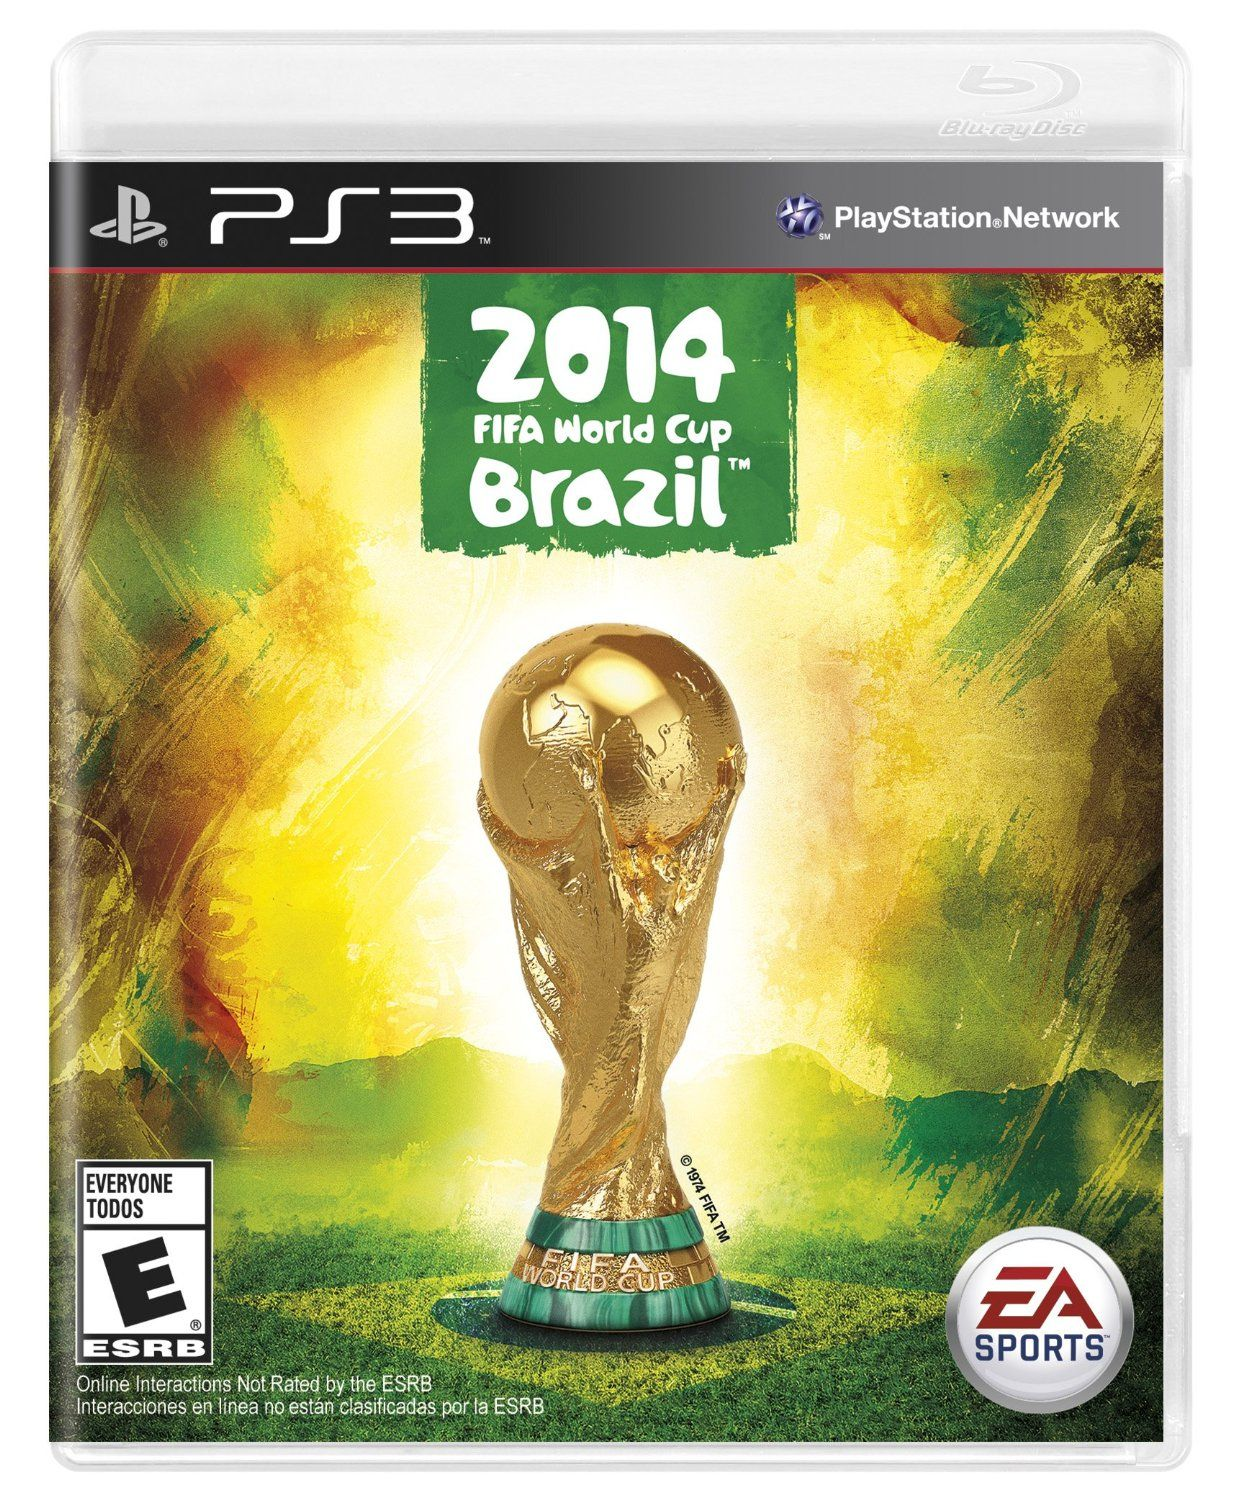 Ea Sports 2014 Fifa World Cup Brazil Playstation 3 With Images Fifa 2014 World Cup